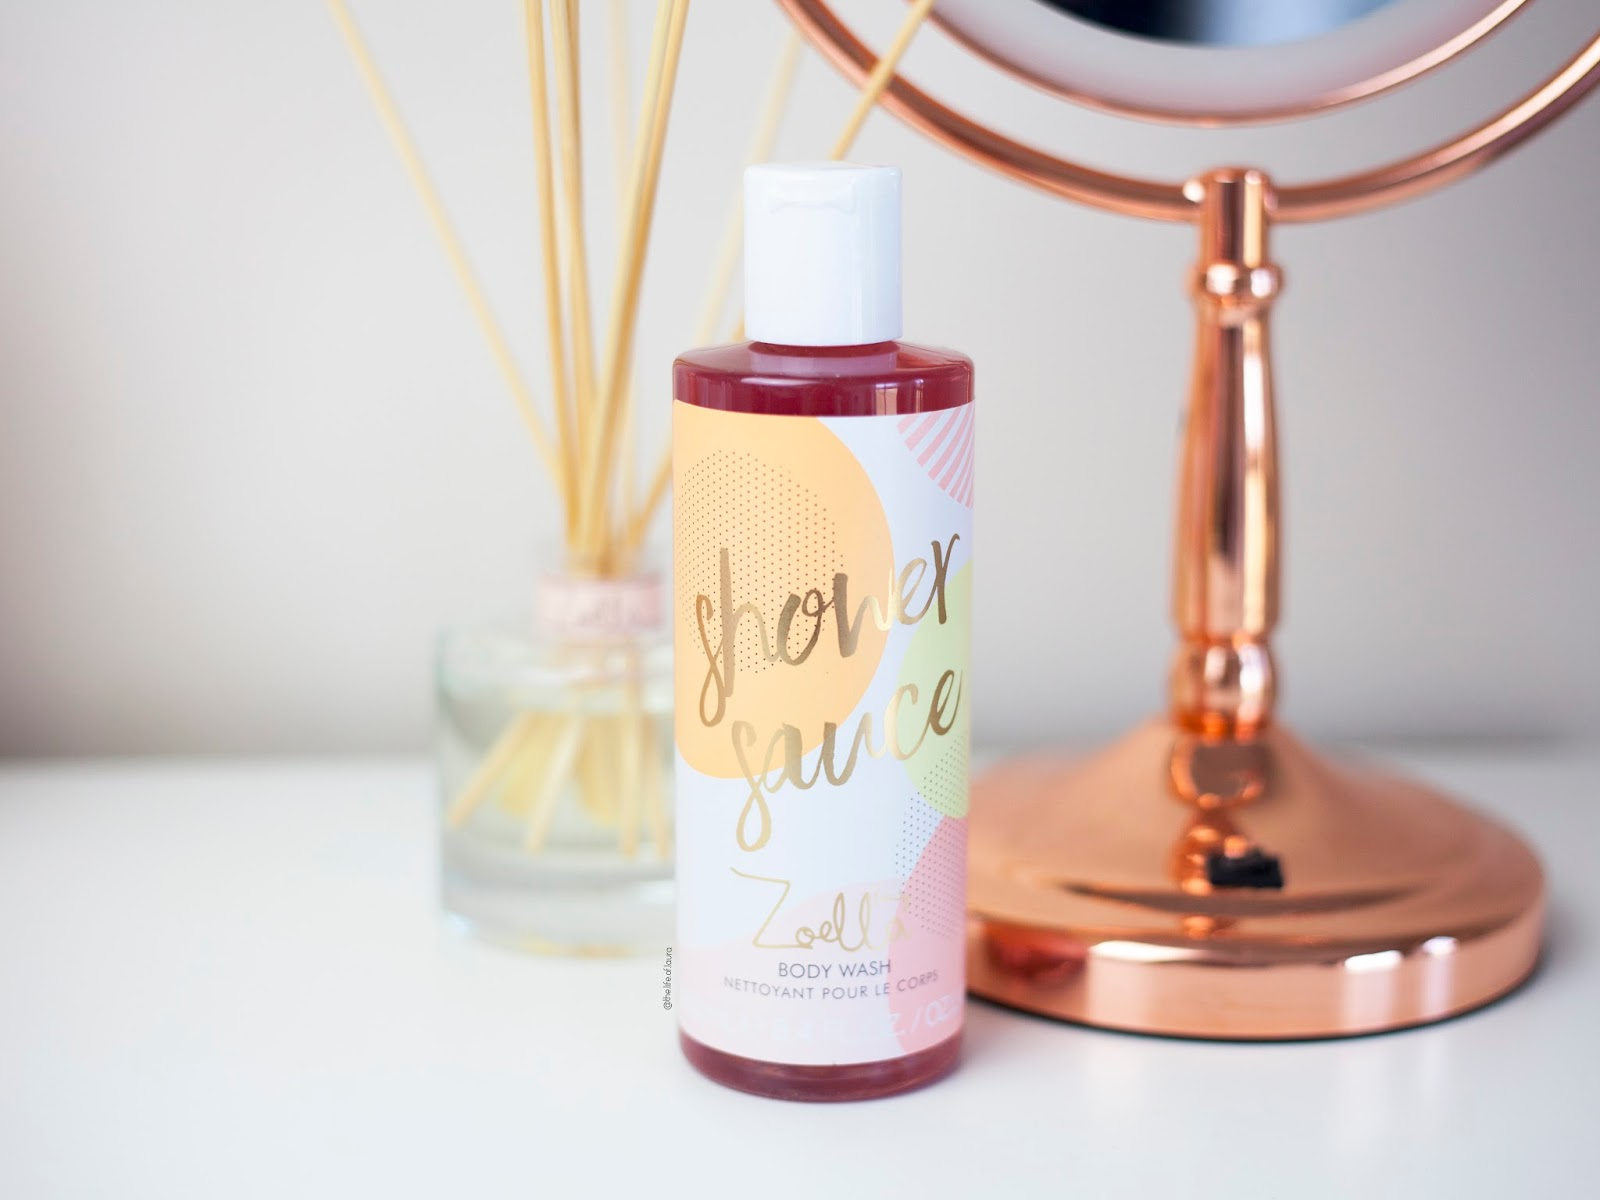 Zoella Jelly and Gelato Shower Sauce